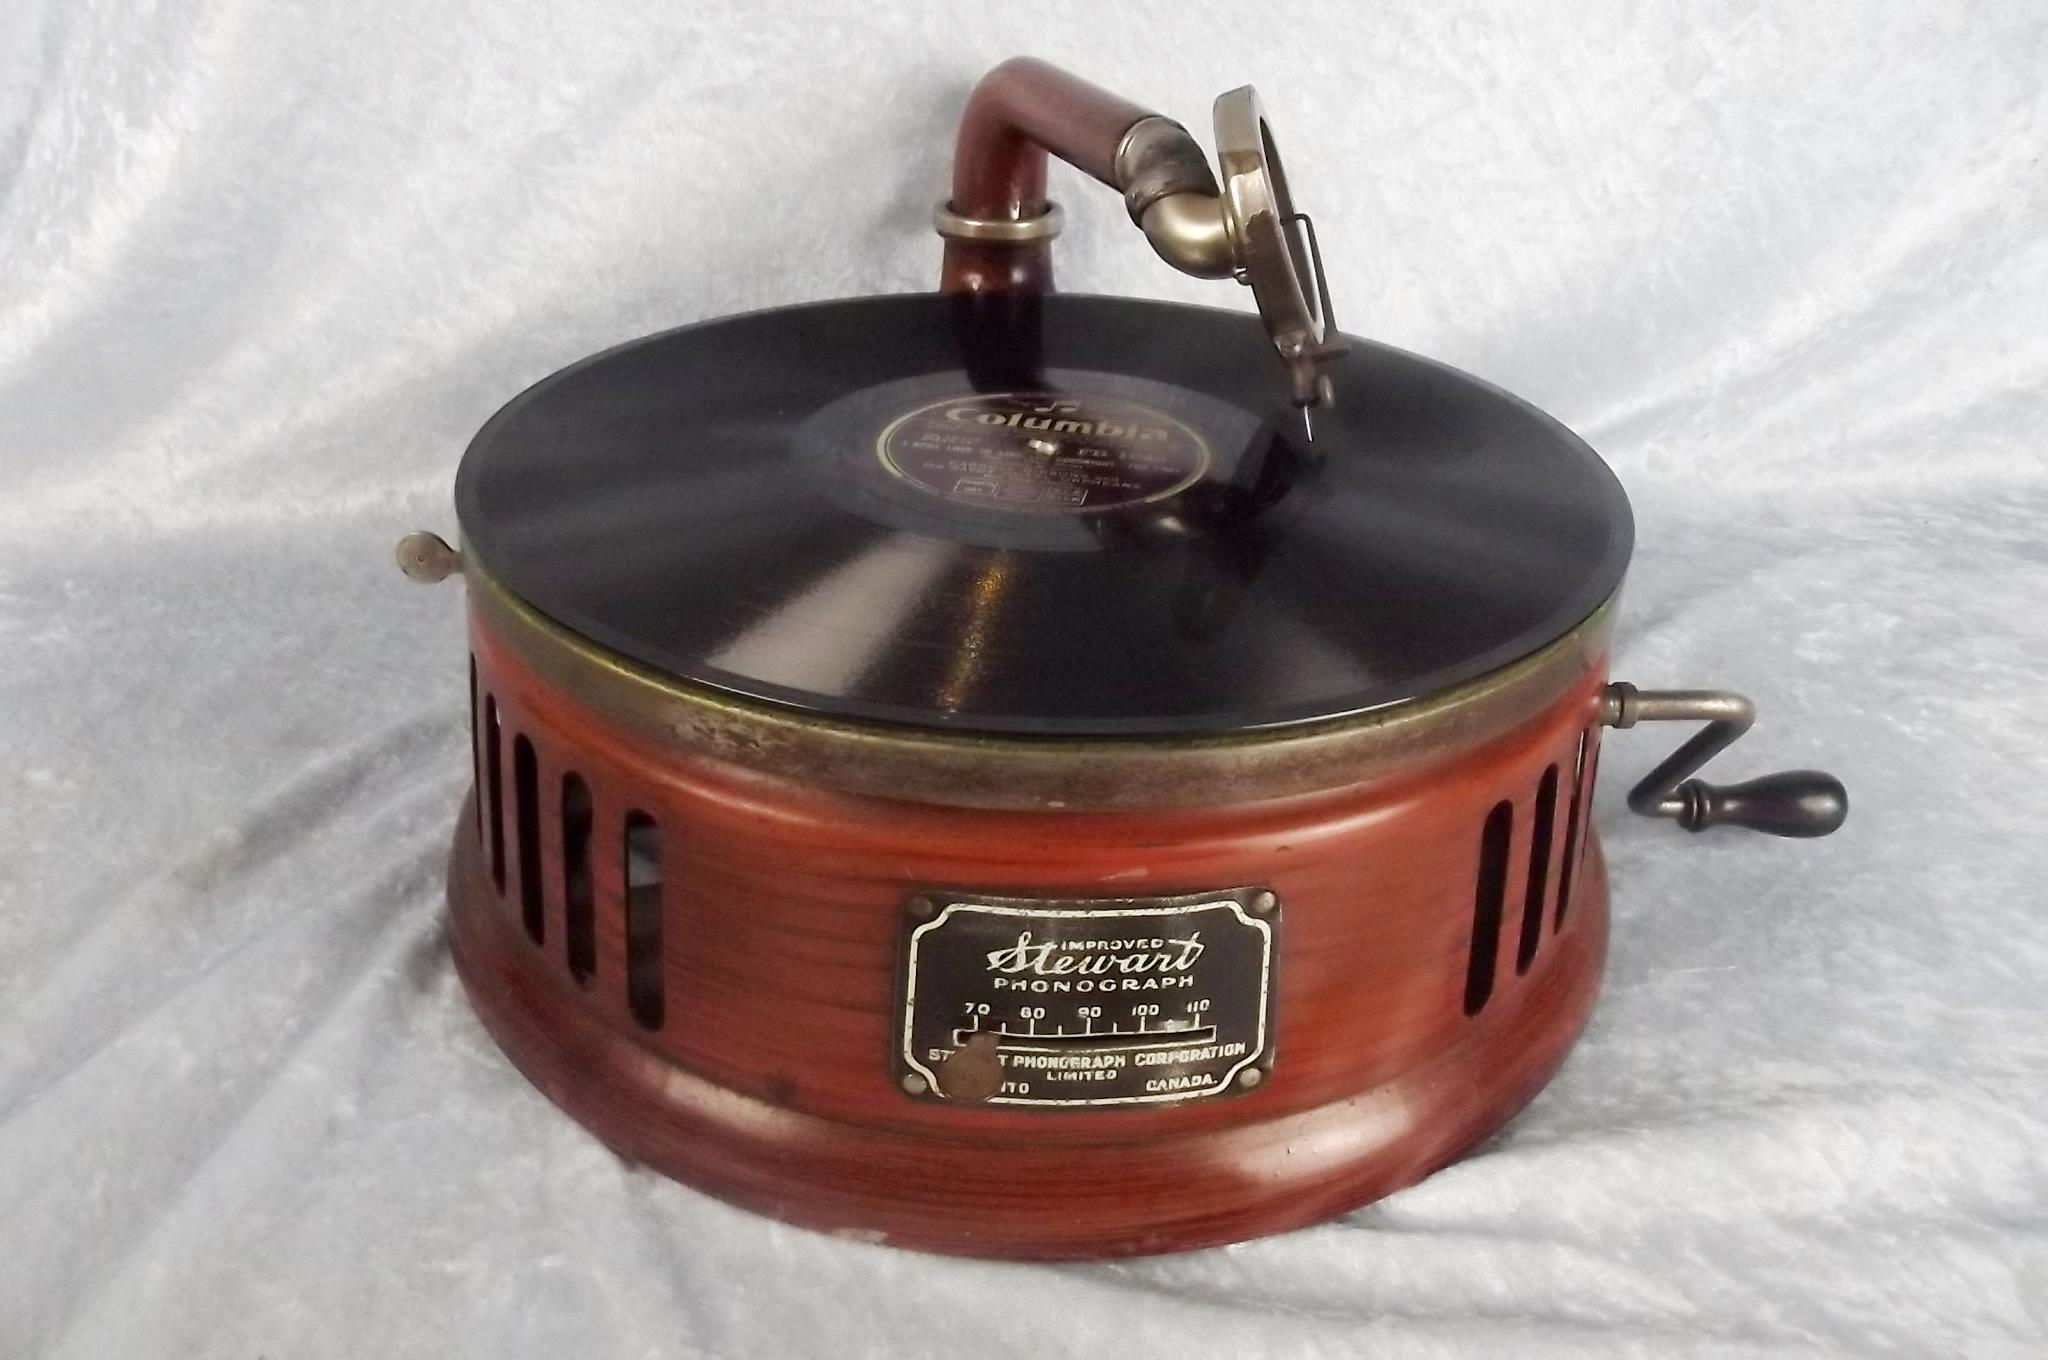 Antique Stewart Phonograph Picnic Portable Record Player